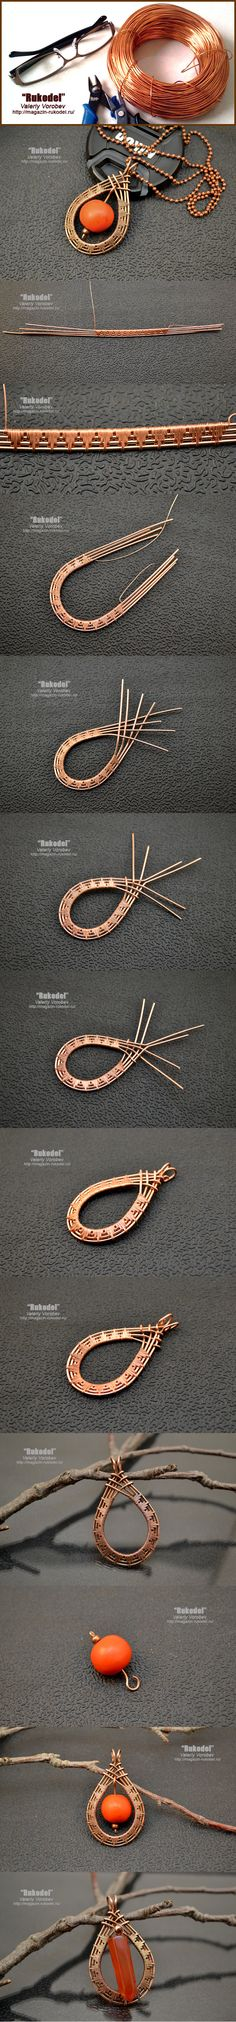 Intricate wire wrapping